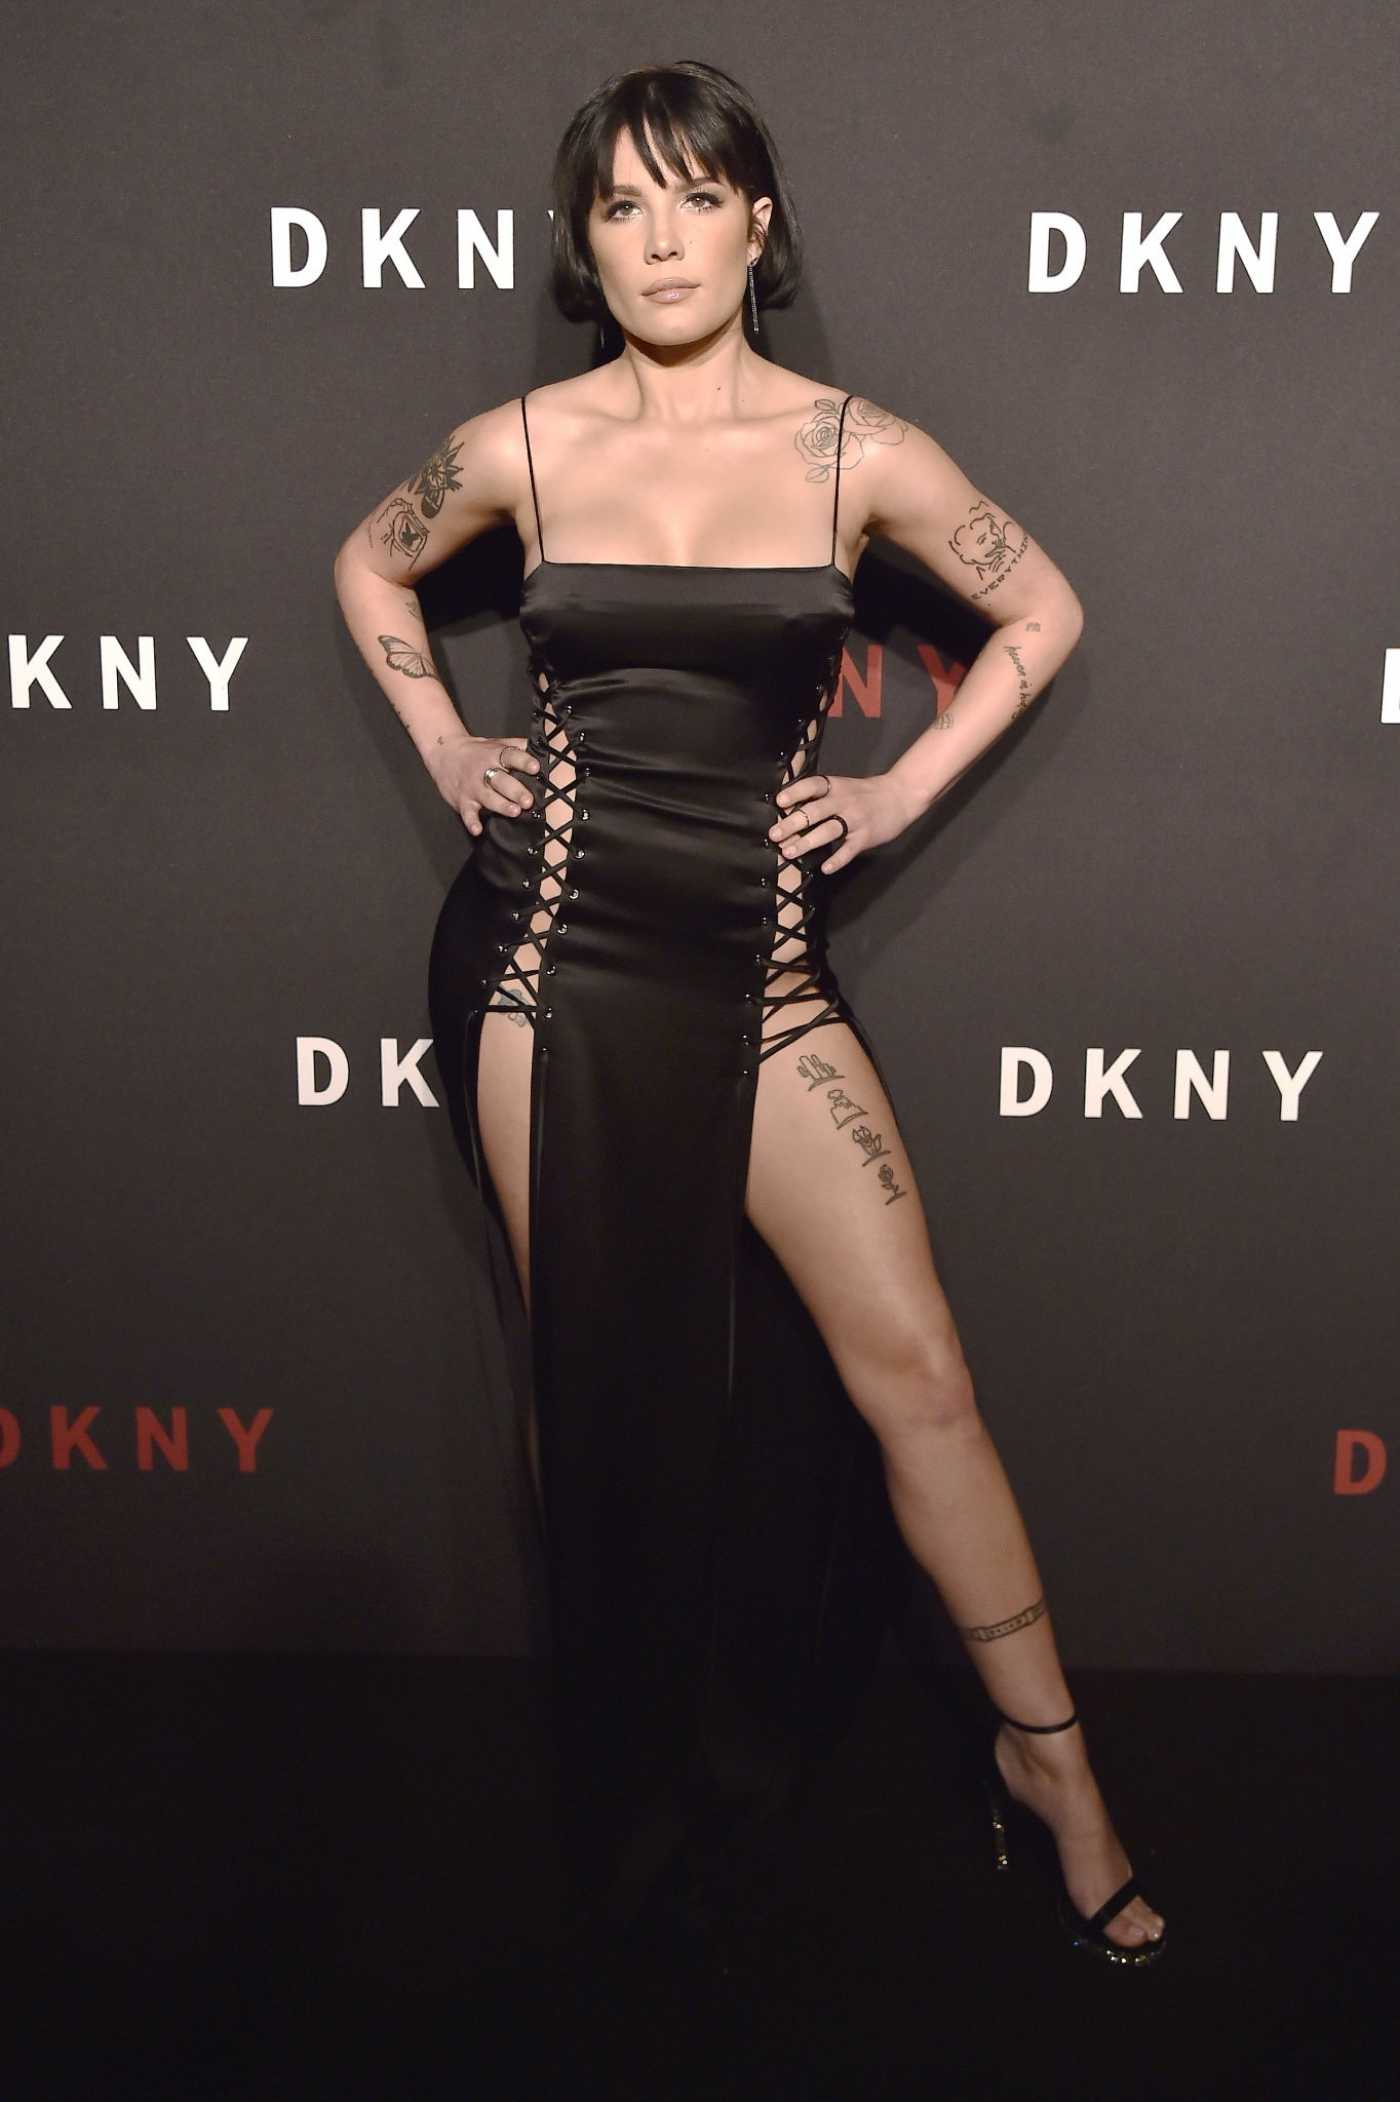 Halsey Attends the DKNY 30th Anniversary Party in New York City 09/09/2019